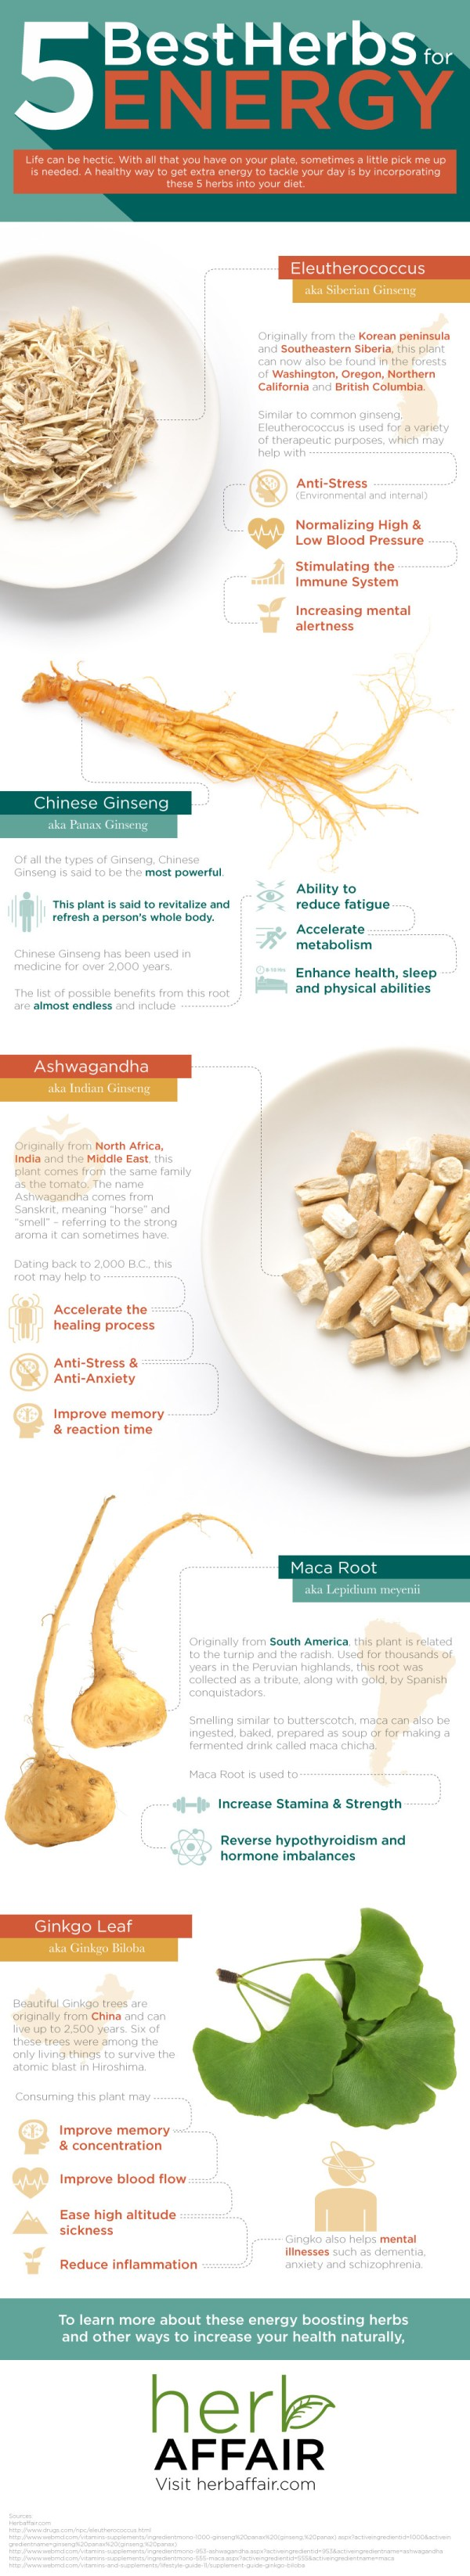 5-herbs-for-energy-infographic